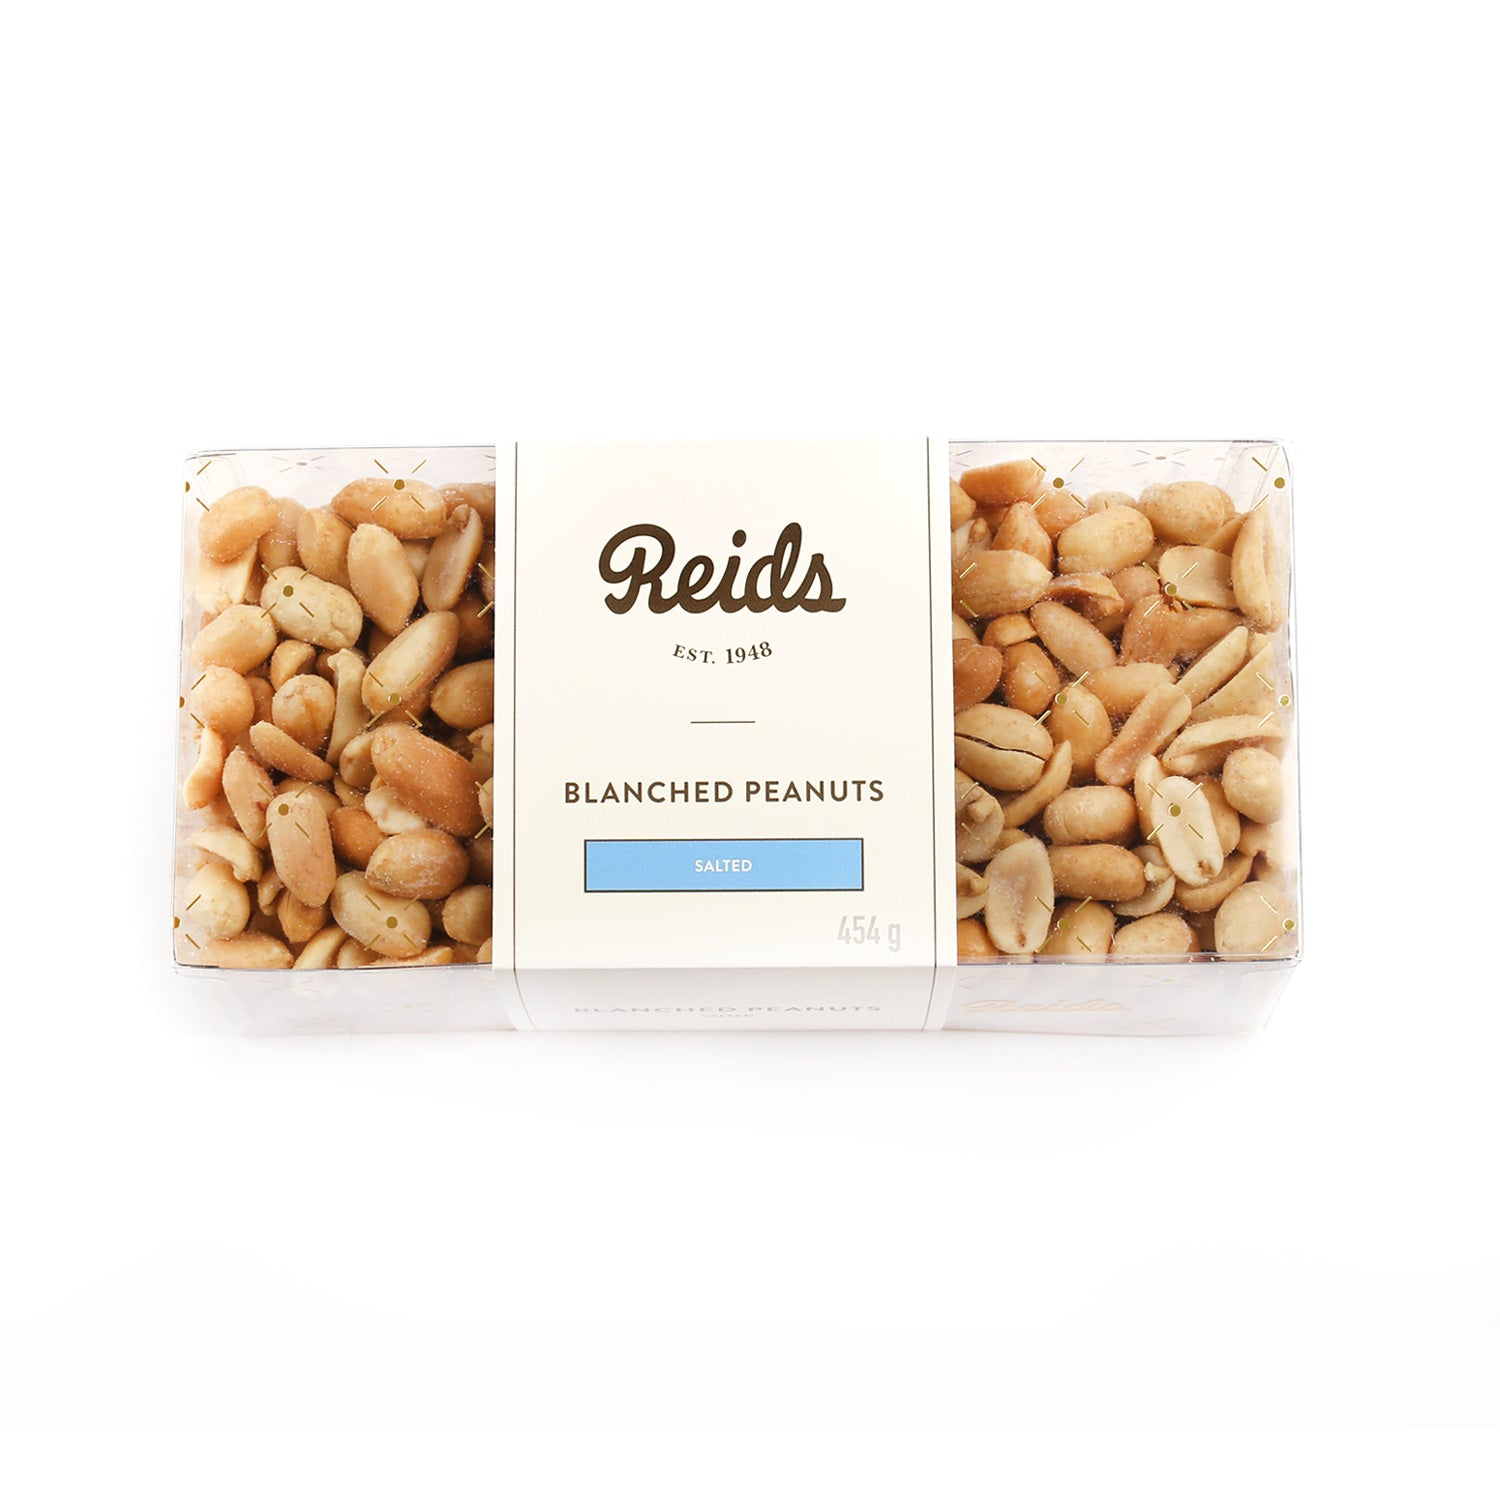 1 lb clear box of blanched peanuts.